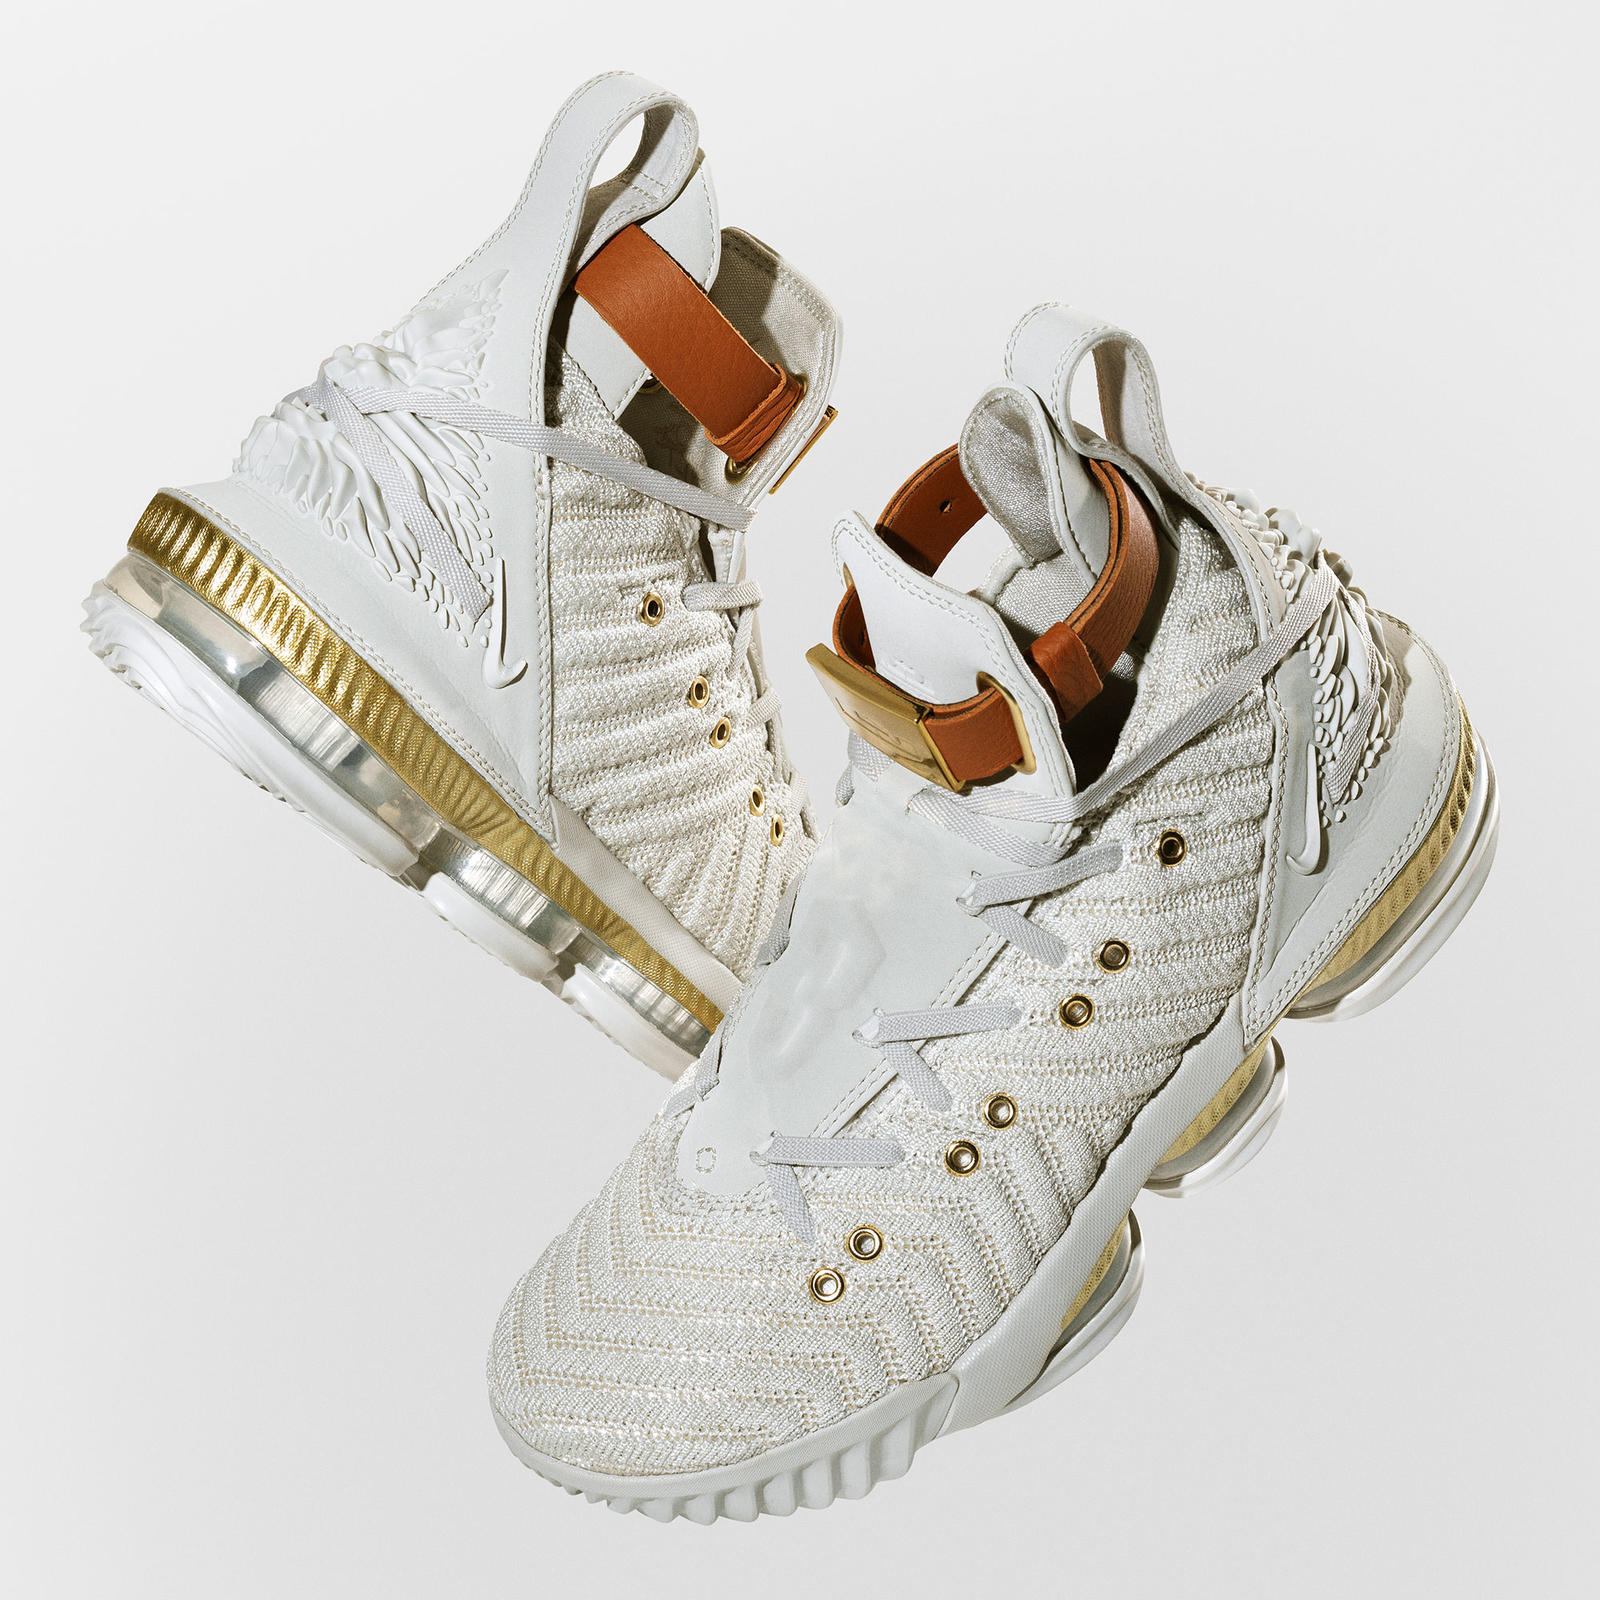 1b3a3c21ef6 A Shoe for the Strongest  the HFR x LeBron 16 - Nike News